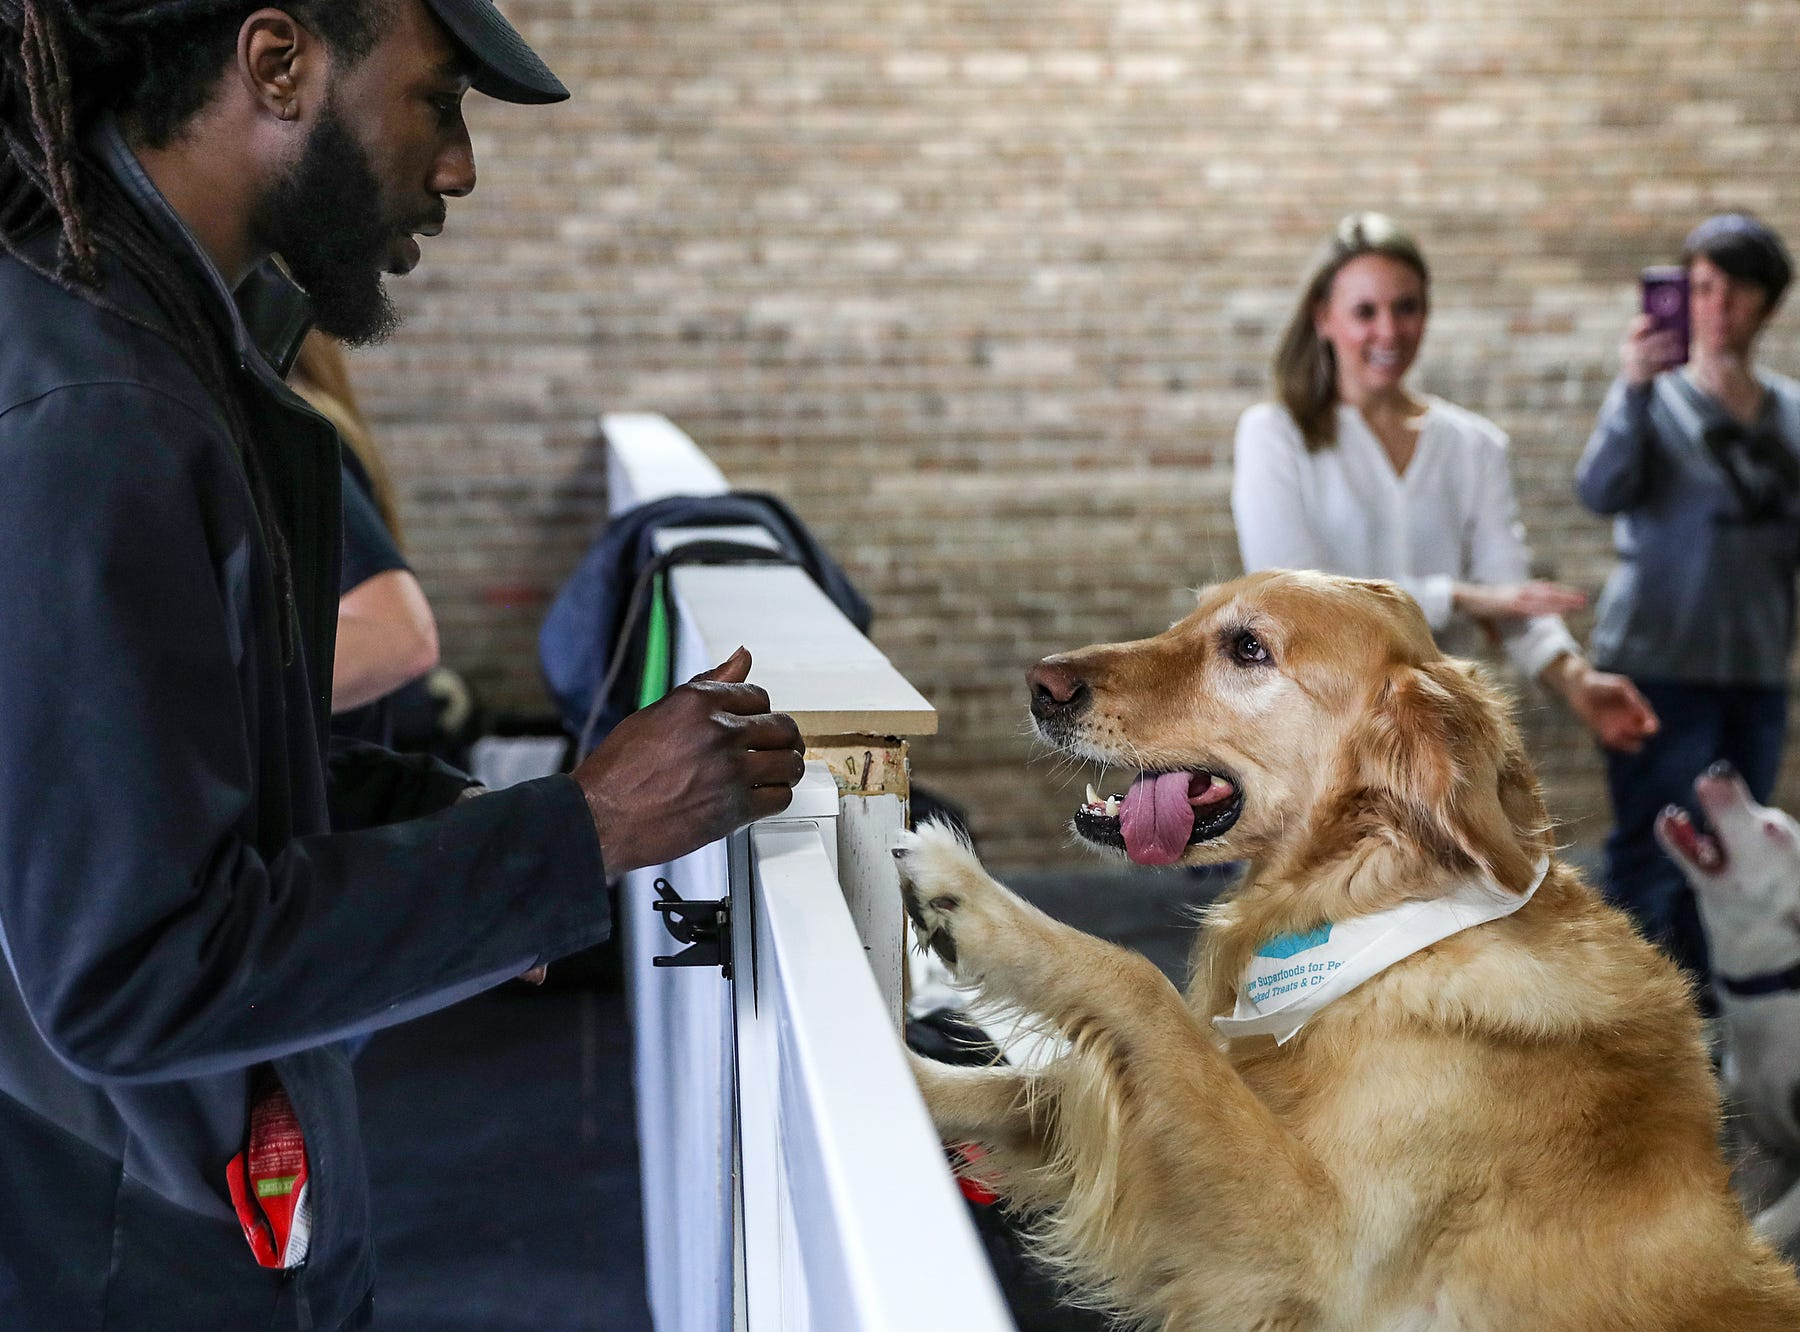 Janey Brown greets a dog during the grand opening of Indy's Indoor Bark Park in Indianapolis, Saturday, Jan, 5, 2019. The large indoor space offers owners a place to exercise their dogs regardless of the weather. Membership options include single-day, multi-day and annual passes.